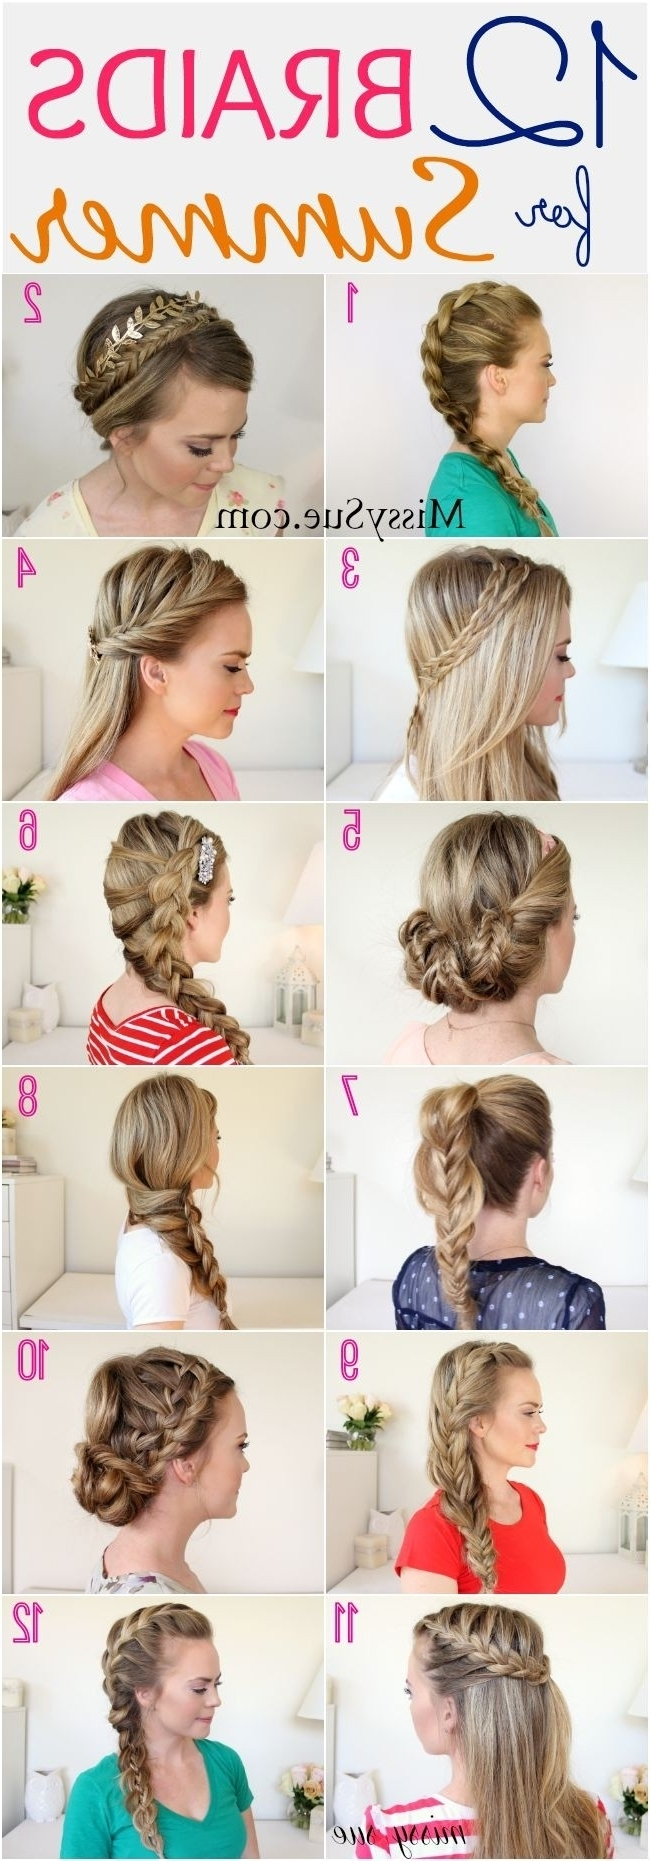 26 Pretty Braided Hairstyle For Summer Popular Haircuts Casual Braided Hairstyles For Medium Hair